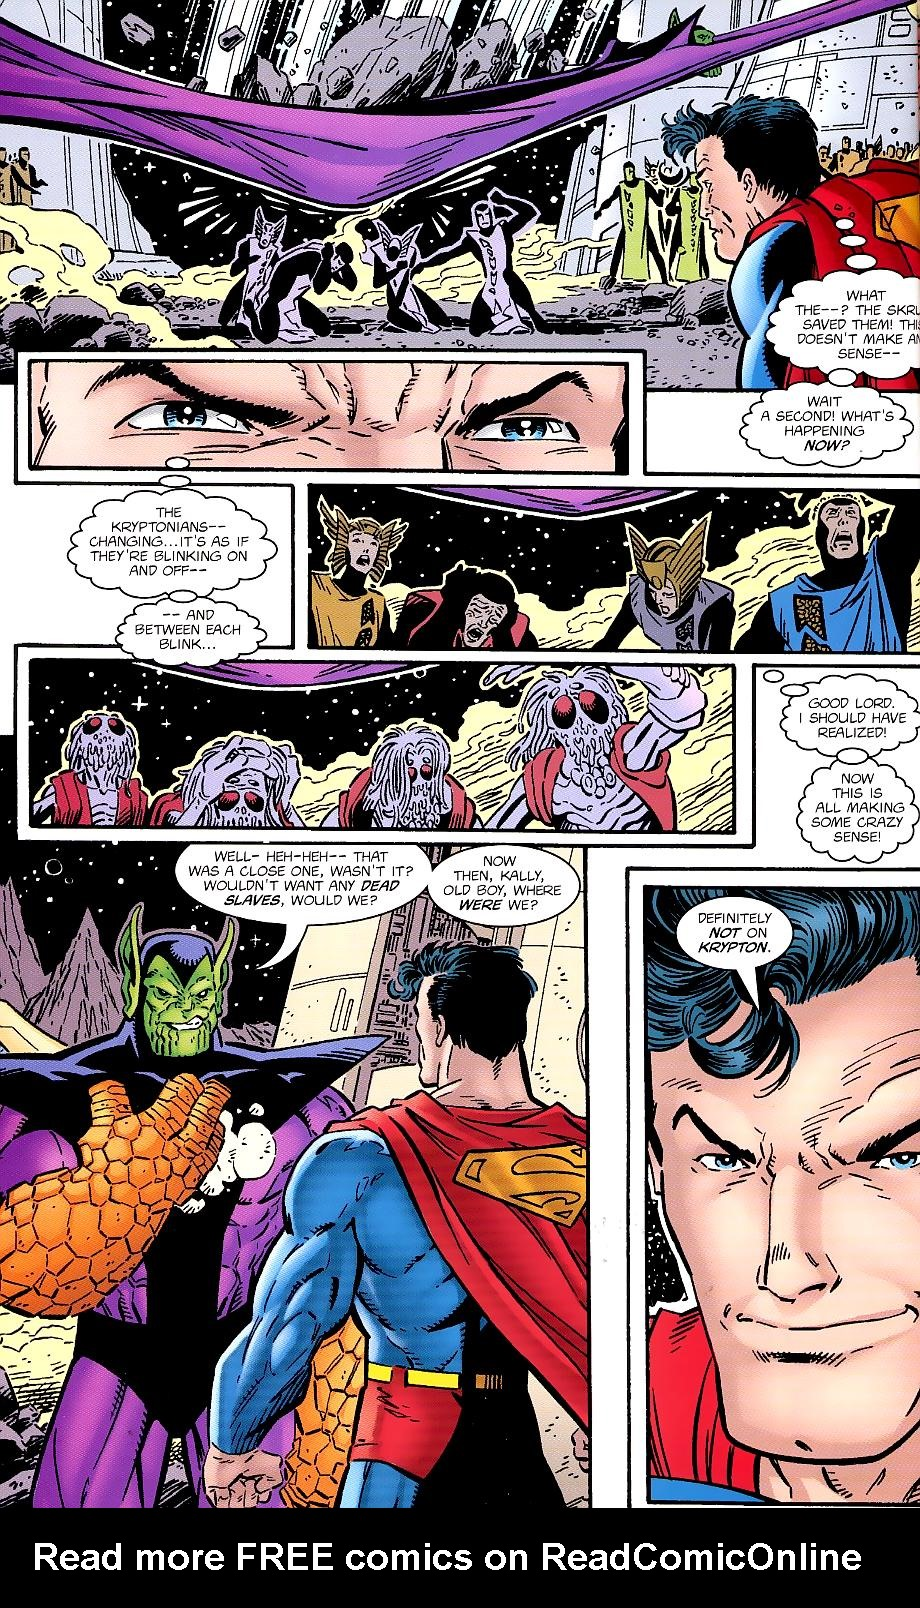 Read online Silver Surfer/Superman comic -  Issue # Full - 22